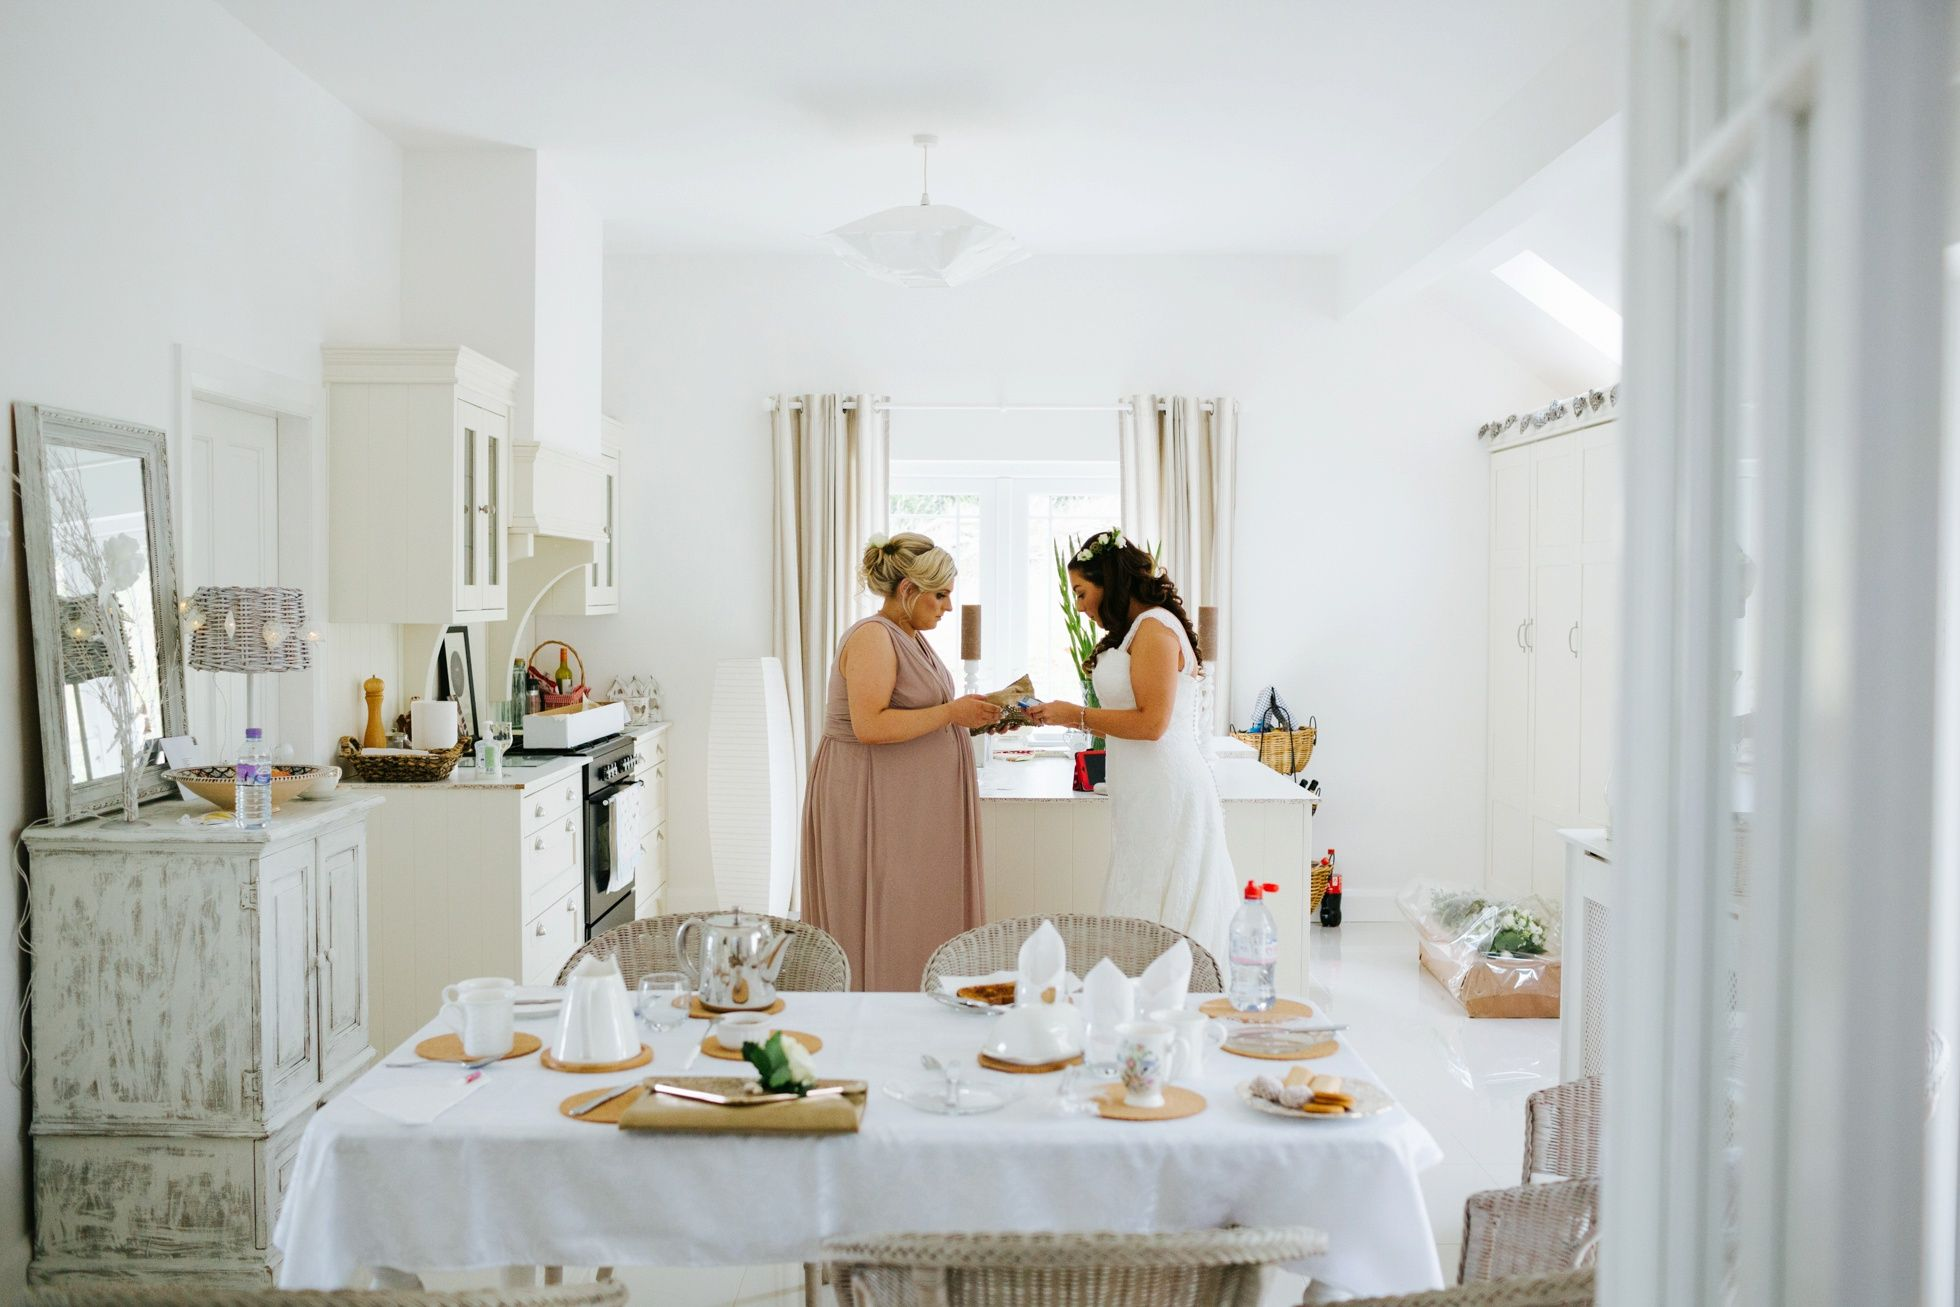 White | Bride and bridesmaid making their final preparations | William and Judiths Tullyglass Wedding Northern Ireland by Honey and the Moon Photography www.honeyandthemoonphotography.co.uk